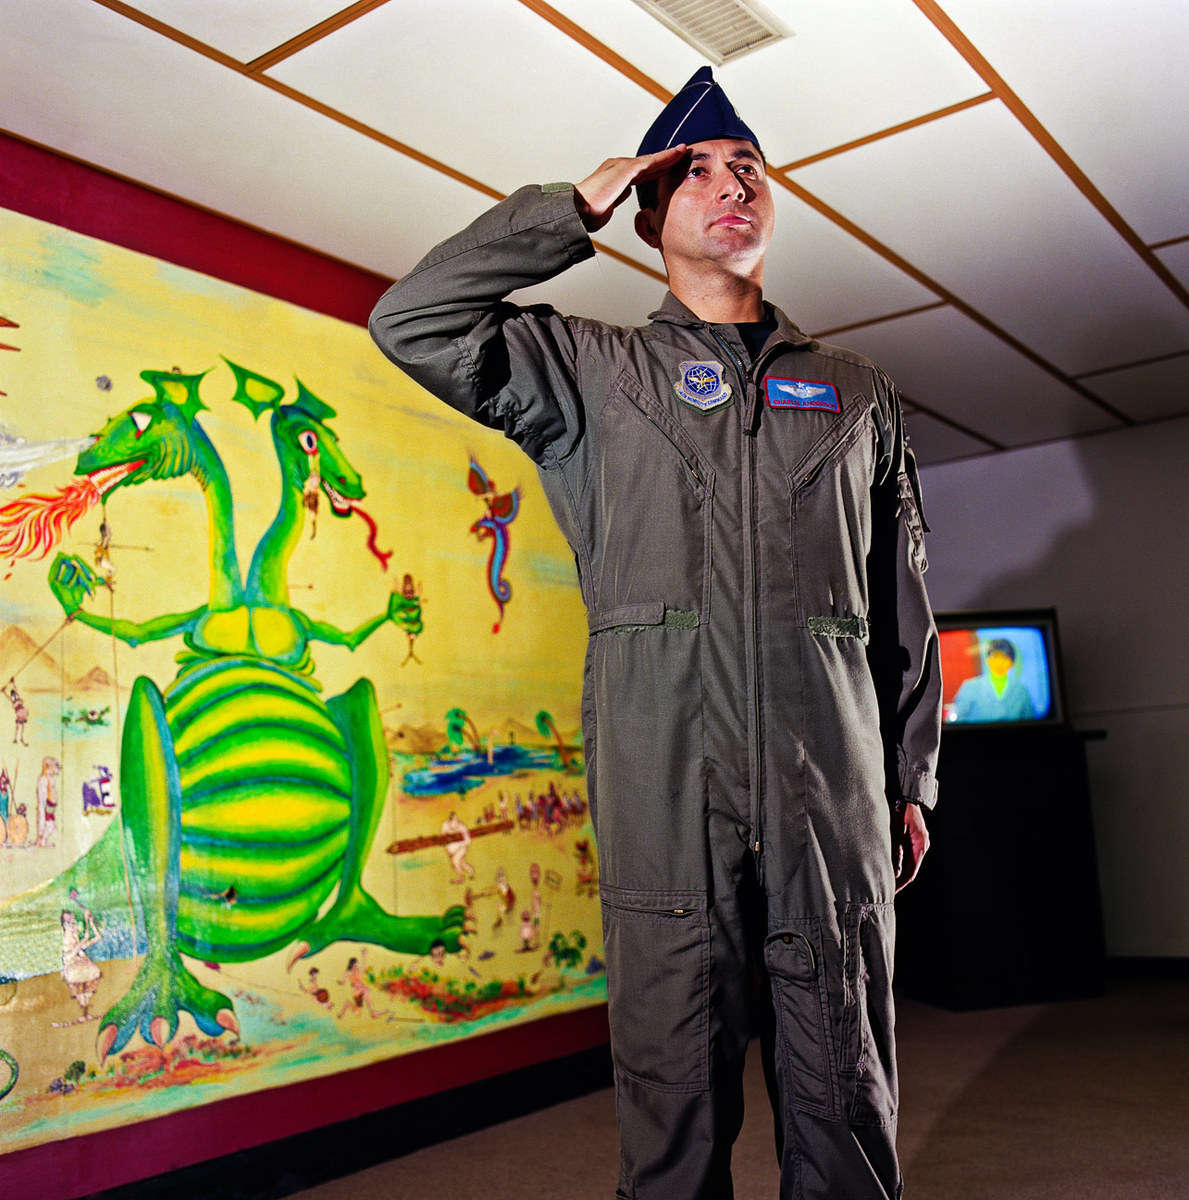 Pilot for the US National Guard